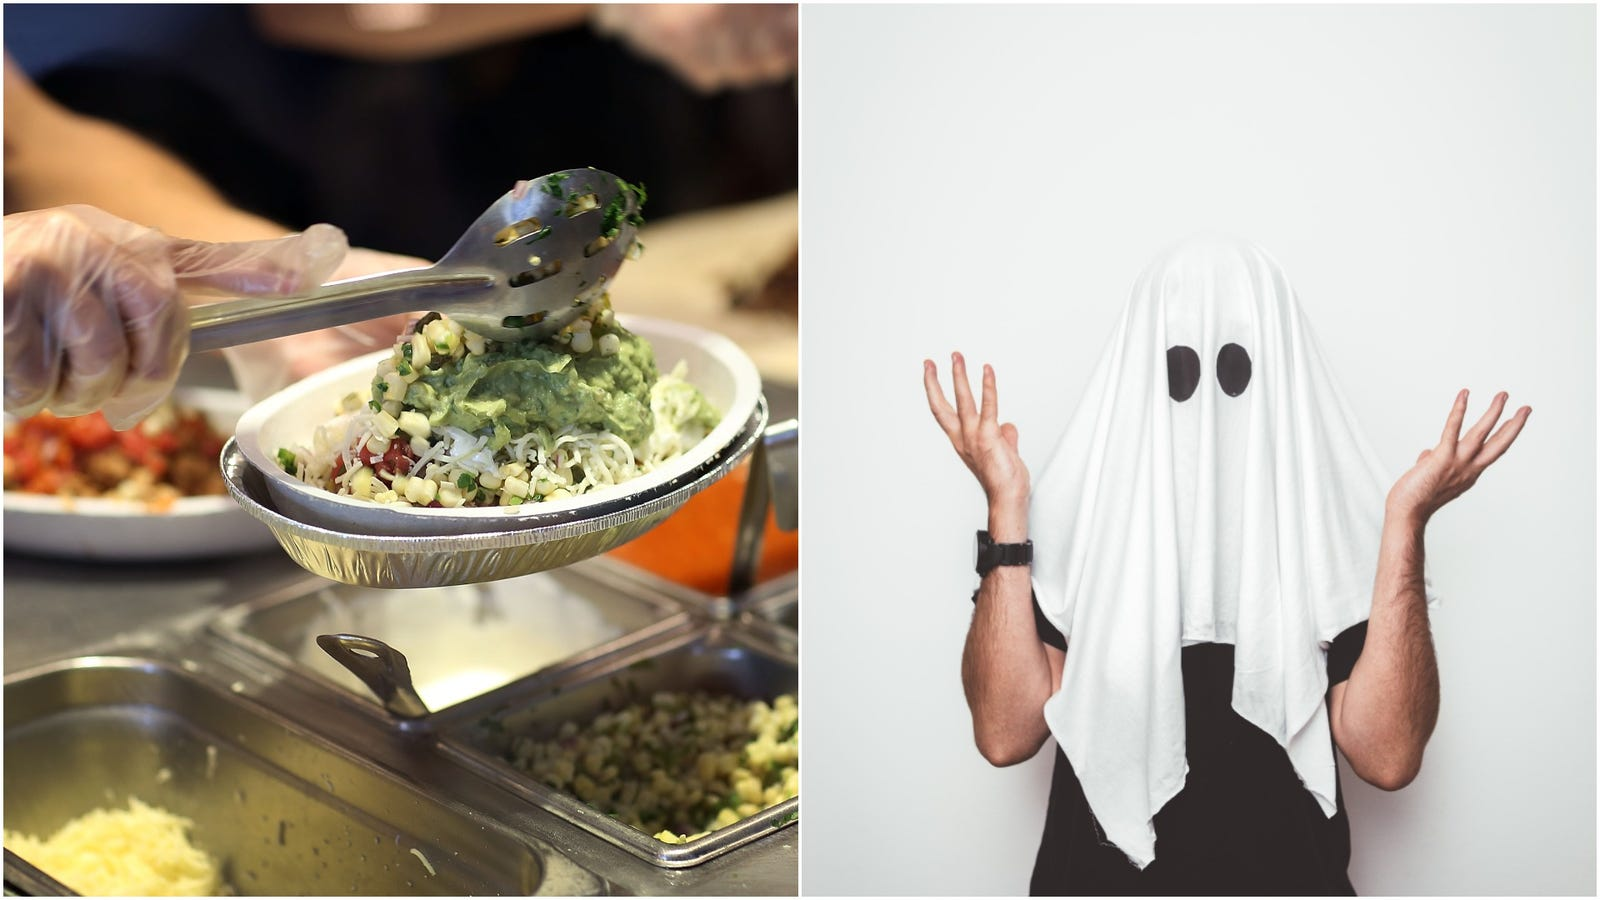 chipotle's halloween costume discount forces staff to make the tough